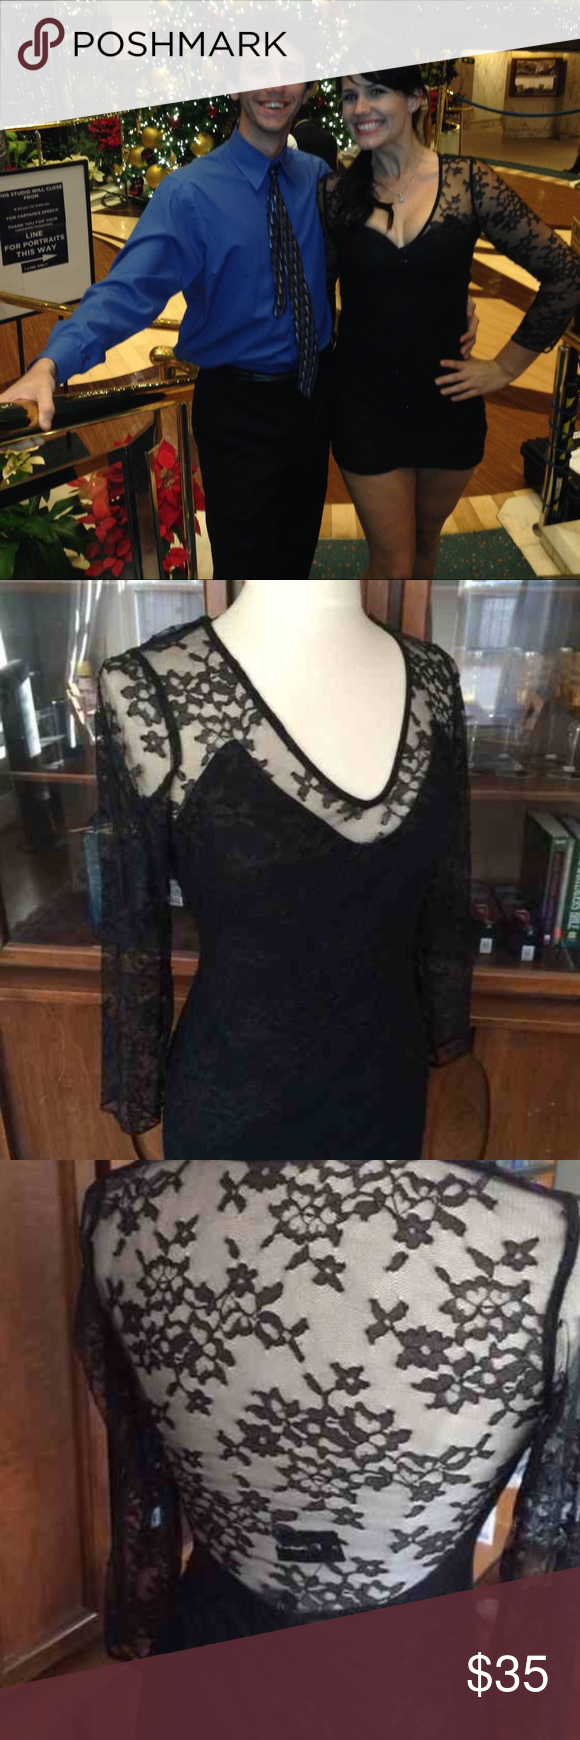 Express Timeless Lace Long-Sleeved Dress. This timeless dress got me loads of compliments on formal night. Only wore once, perfect condition! Open back lace, cuts perfectly around the bust and butt. Express Dresses Long Sleeve